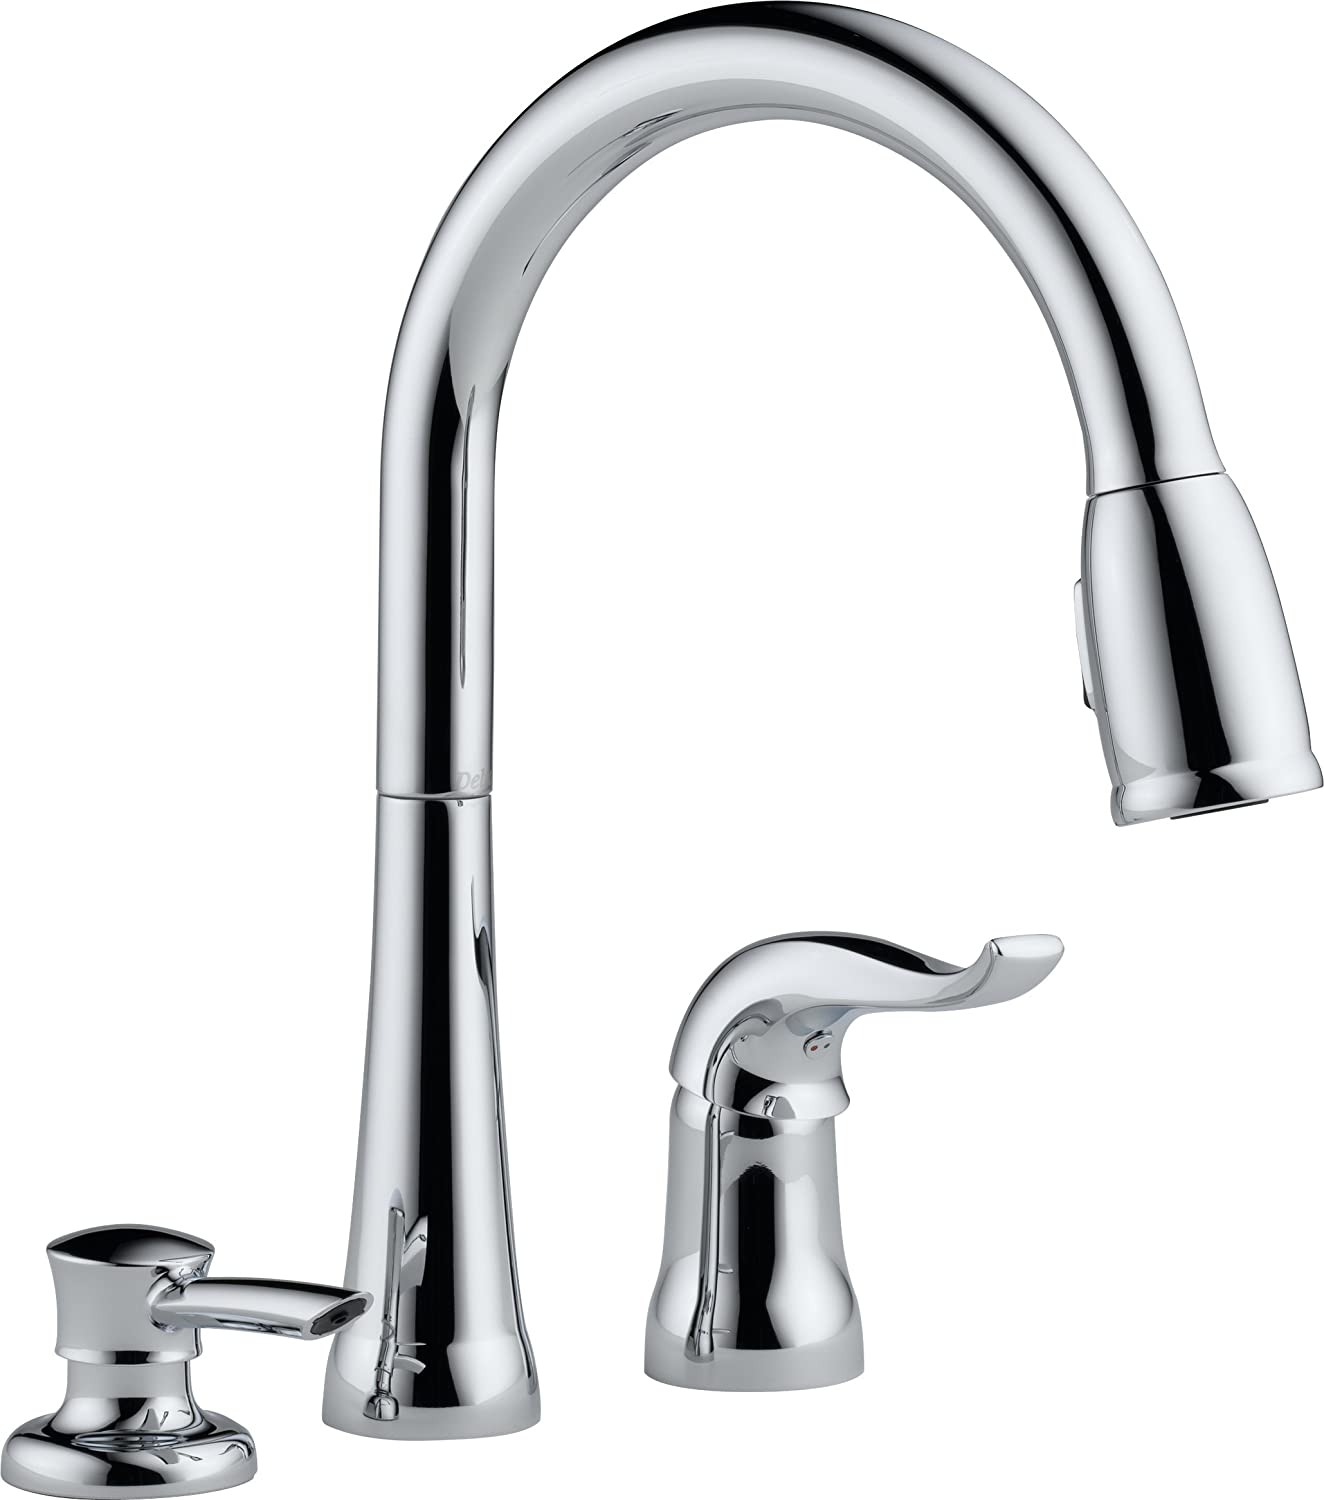 Exceptionnel Delta 16970 SD DST Kate Single Handle Pull Down Kitchen Faucet With  Magnetic Docking Spray Head, Chrome   Touch On Kitchen Sink Faucets    Amazon.com